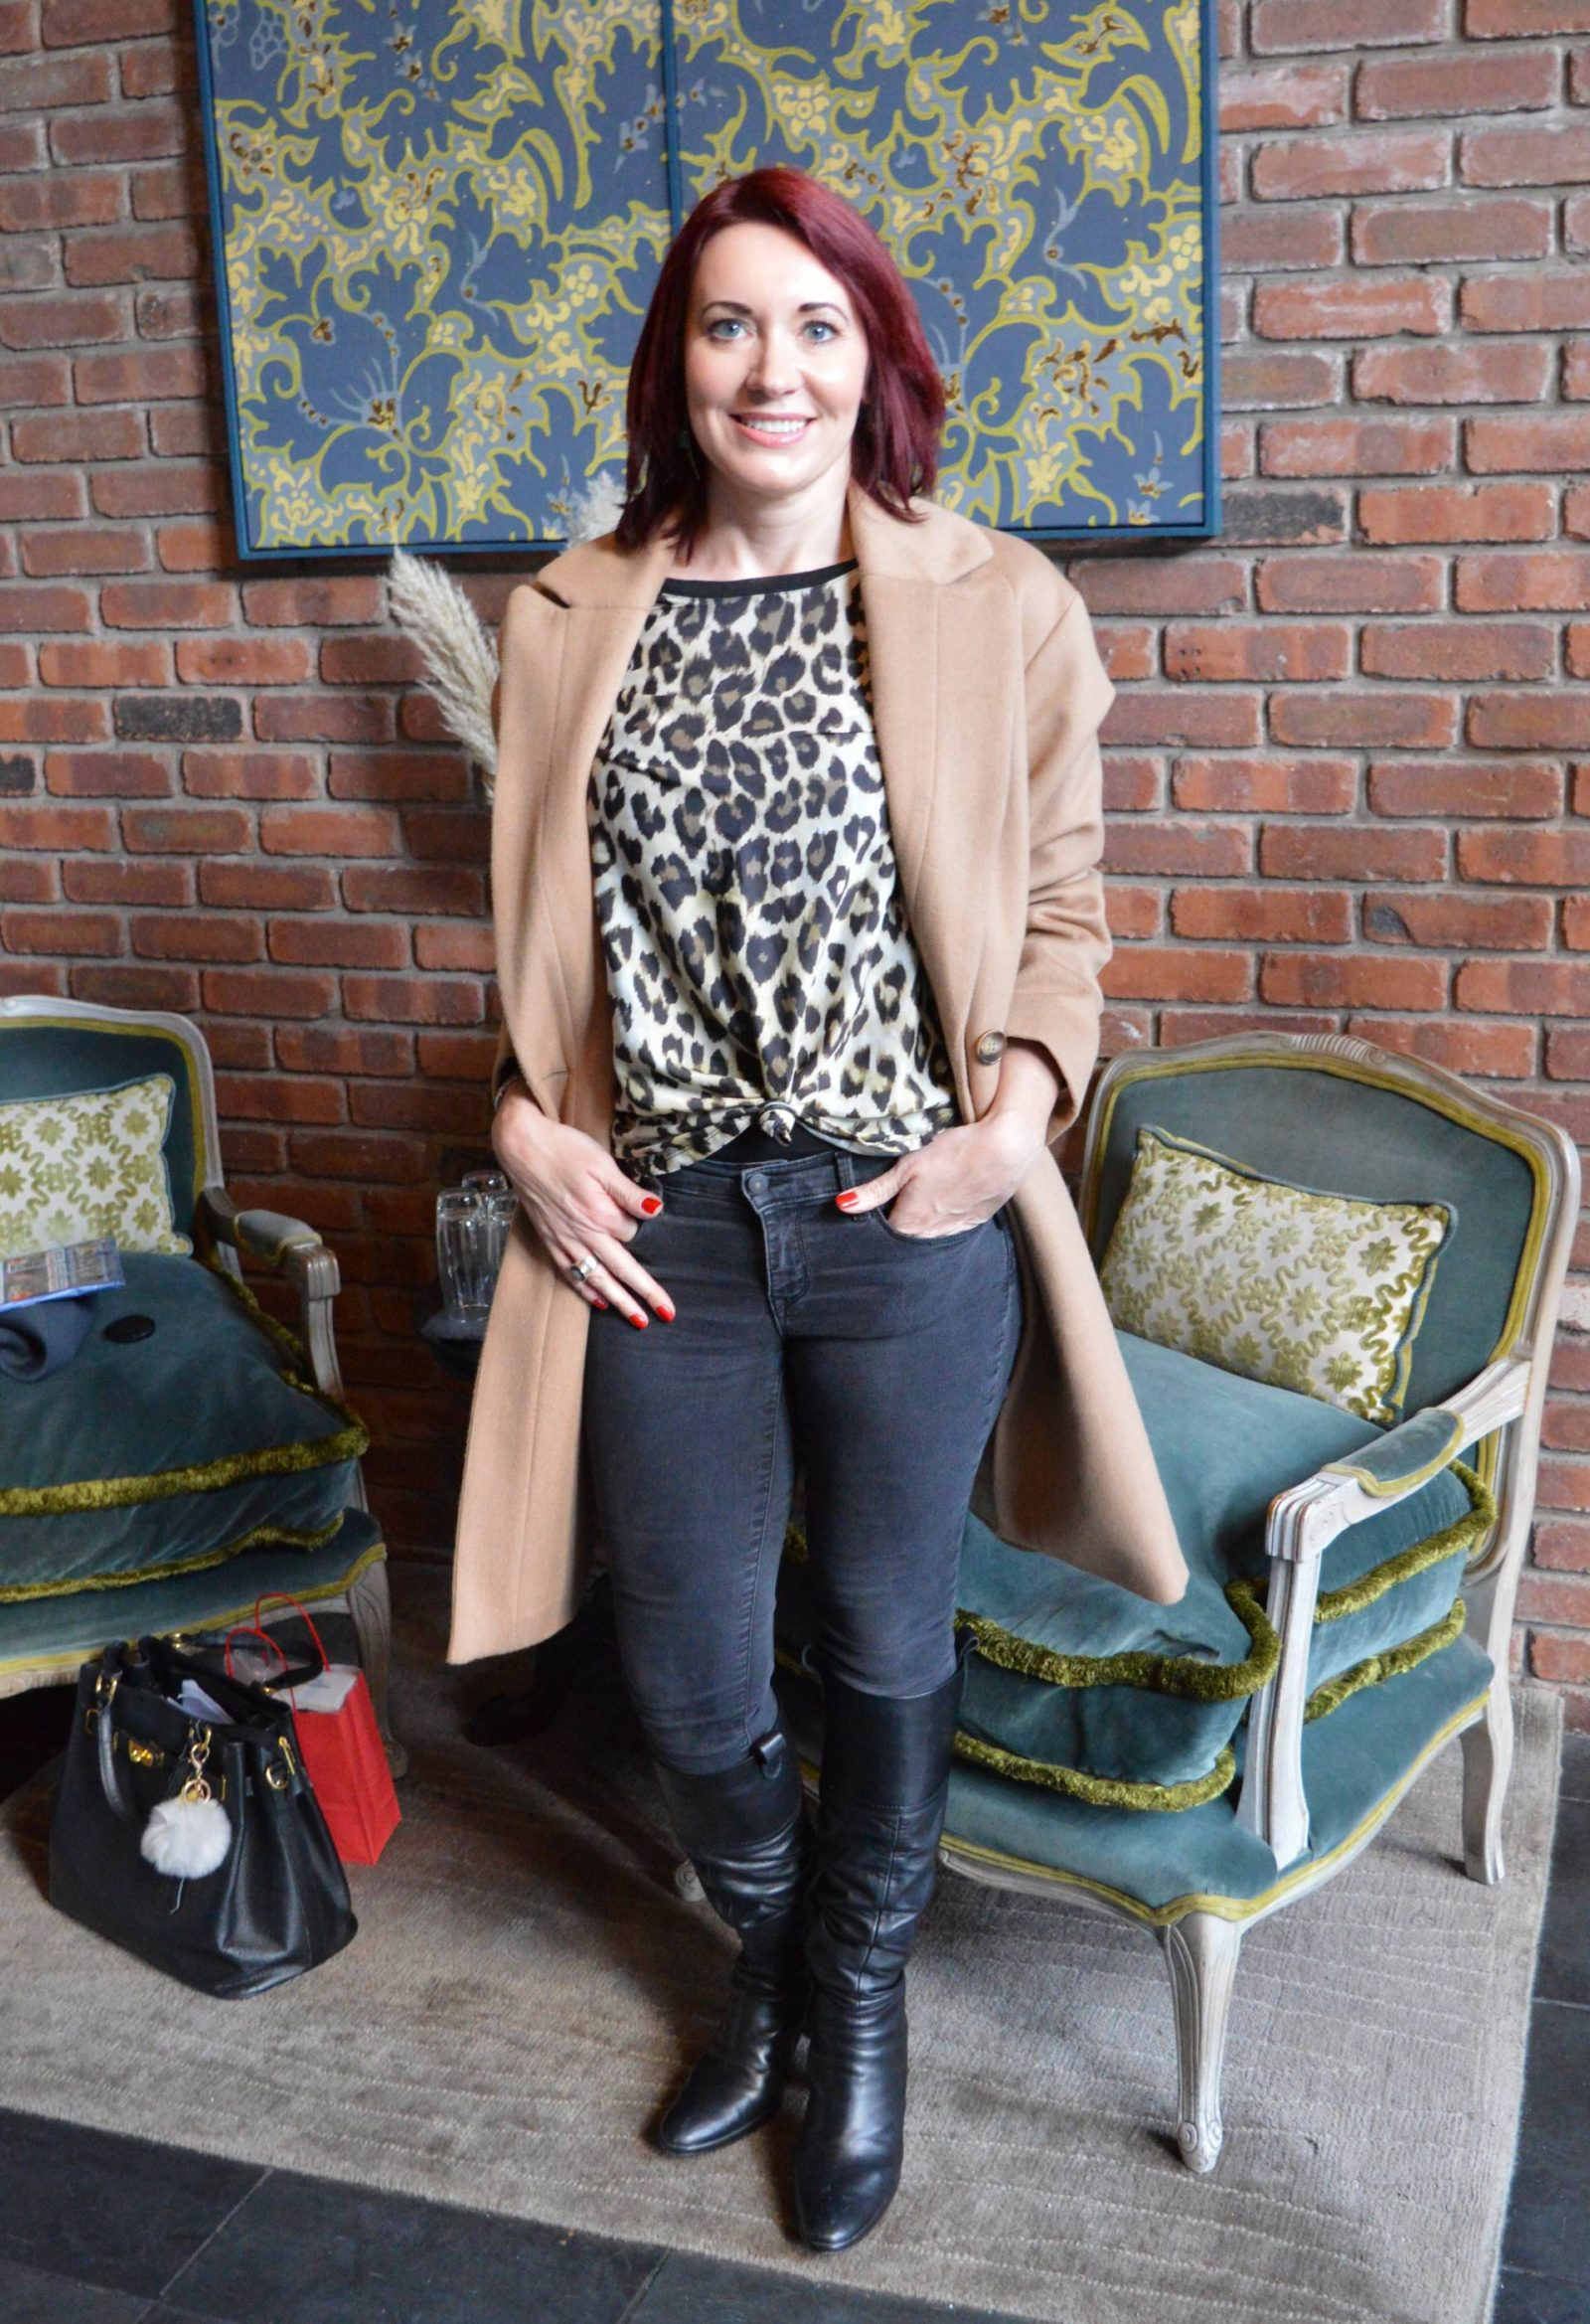 Manfrotto Photography Workshop in Manchester camel coat, leopard print top